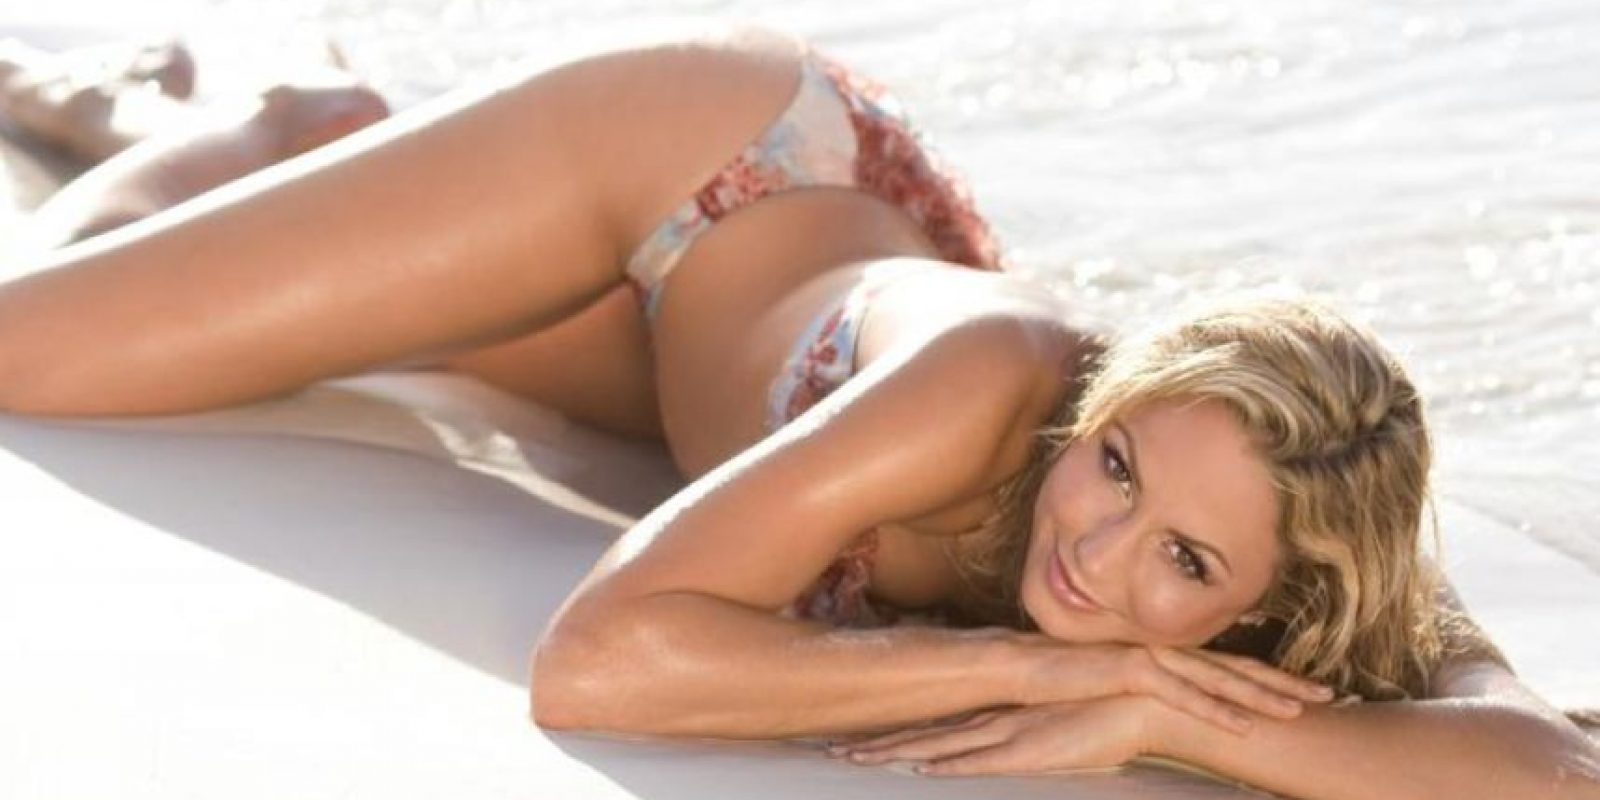 Stacy Kebler Foto: WWE